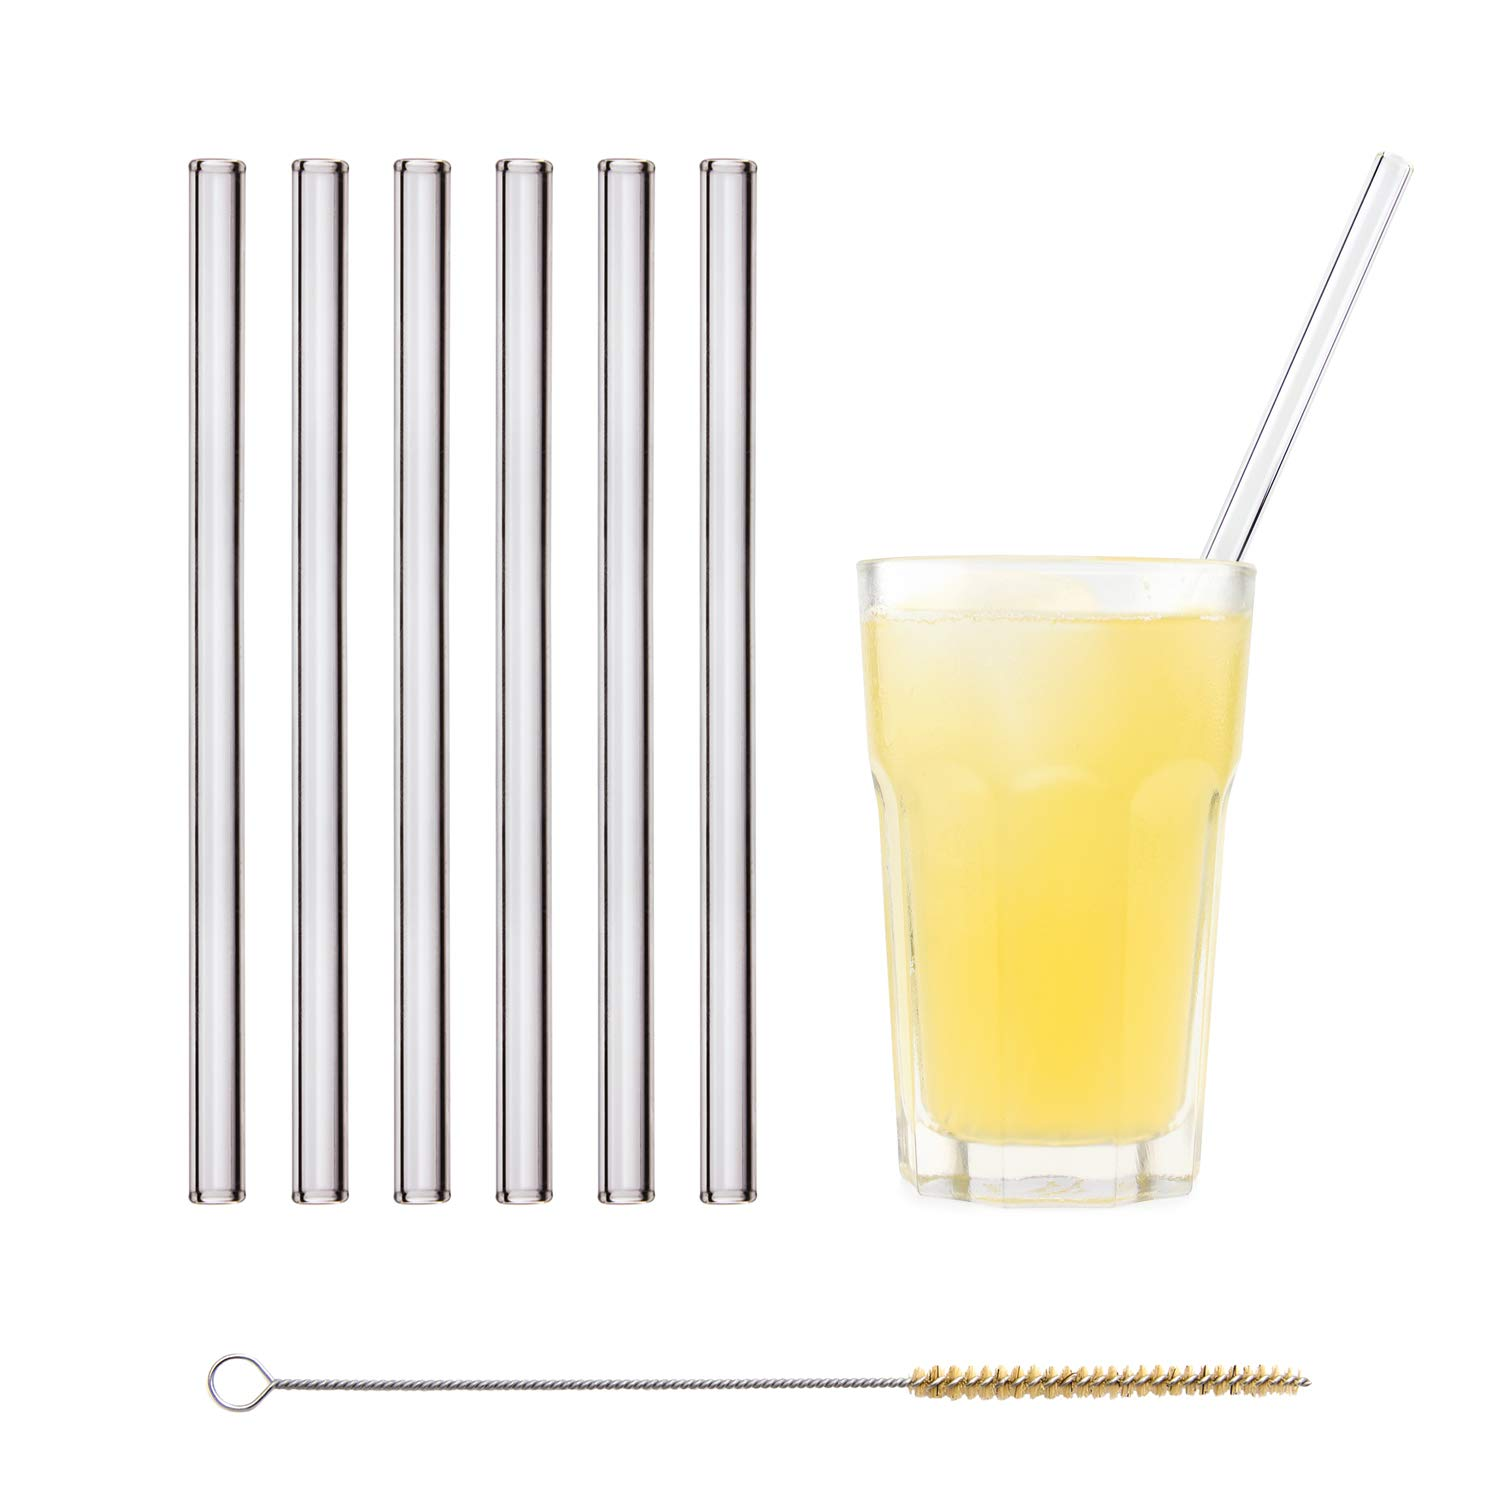 HALM Glass Straws - 6 Reusable Drinking Straws + Plastic-Free Cleaning Brush - Made in Germany - Dishwasher Safe - Eco-Friendly - 23 cm (9 in) x 0.9 cm - Straight - Perfect for Smoothies, Cocktails by HÅLM